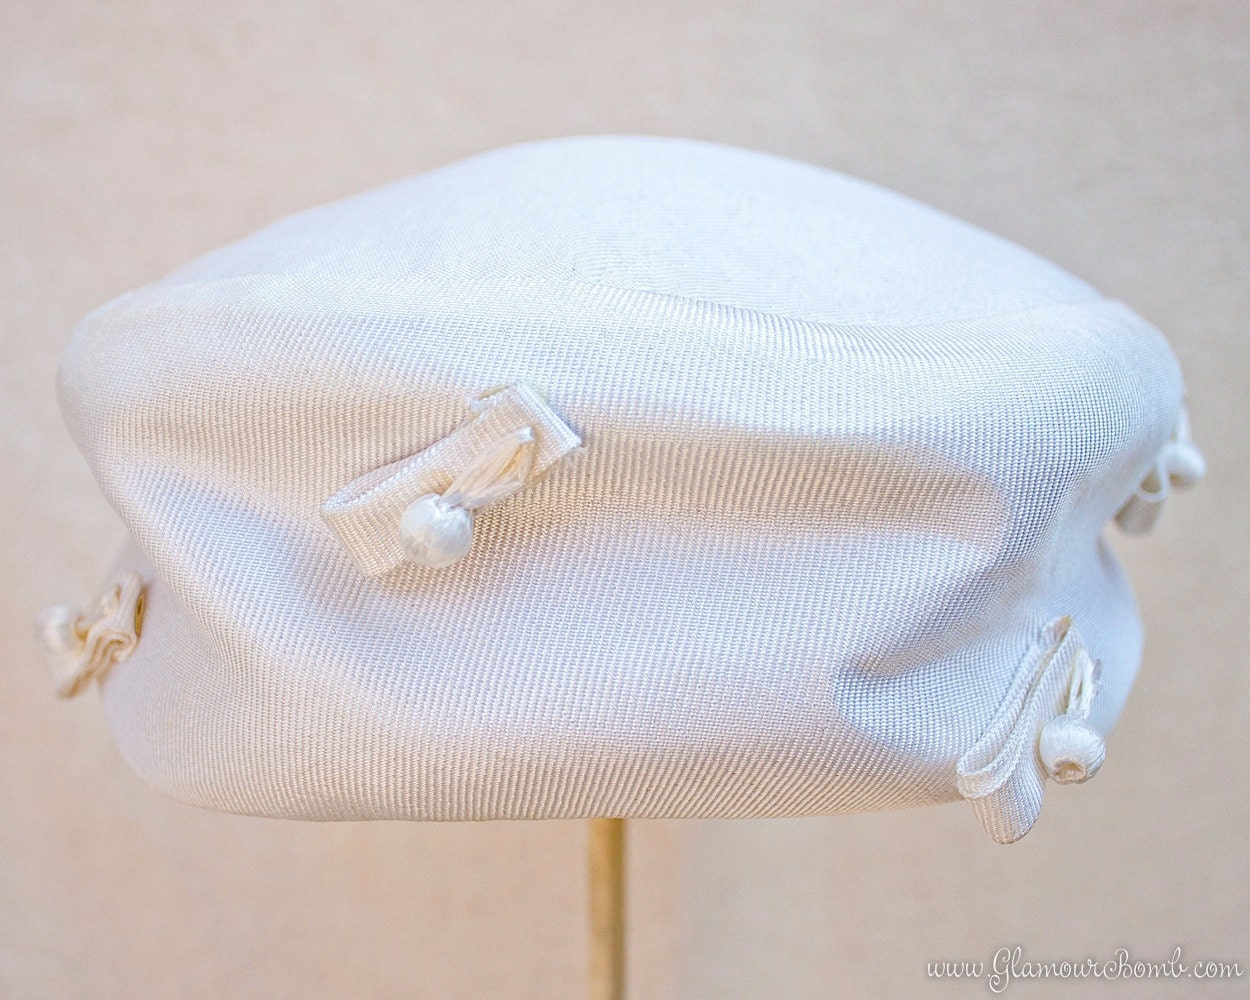 Lord and Taylor Vintage Pillbox Hat Circa 1960s